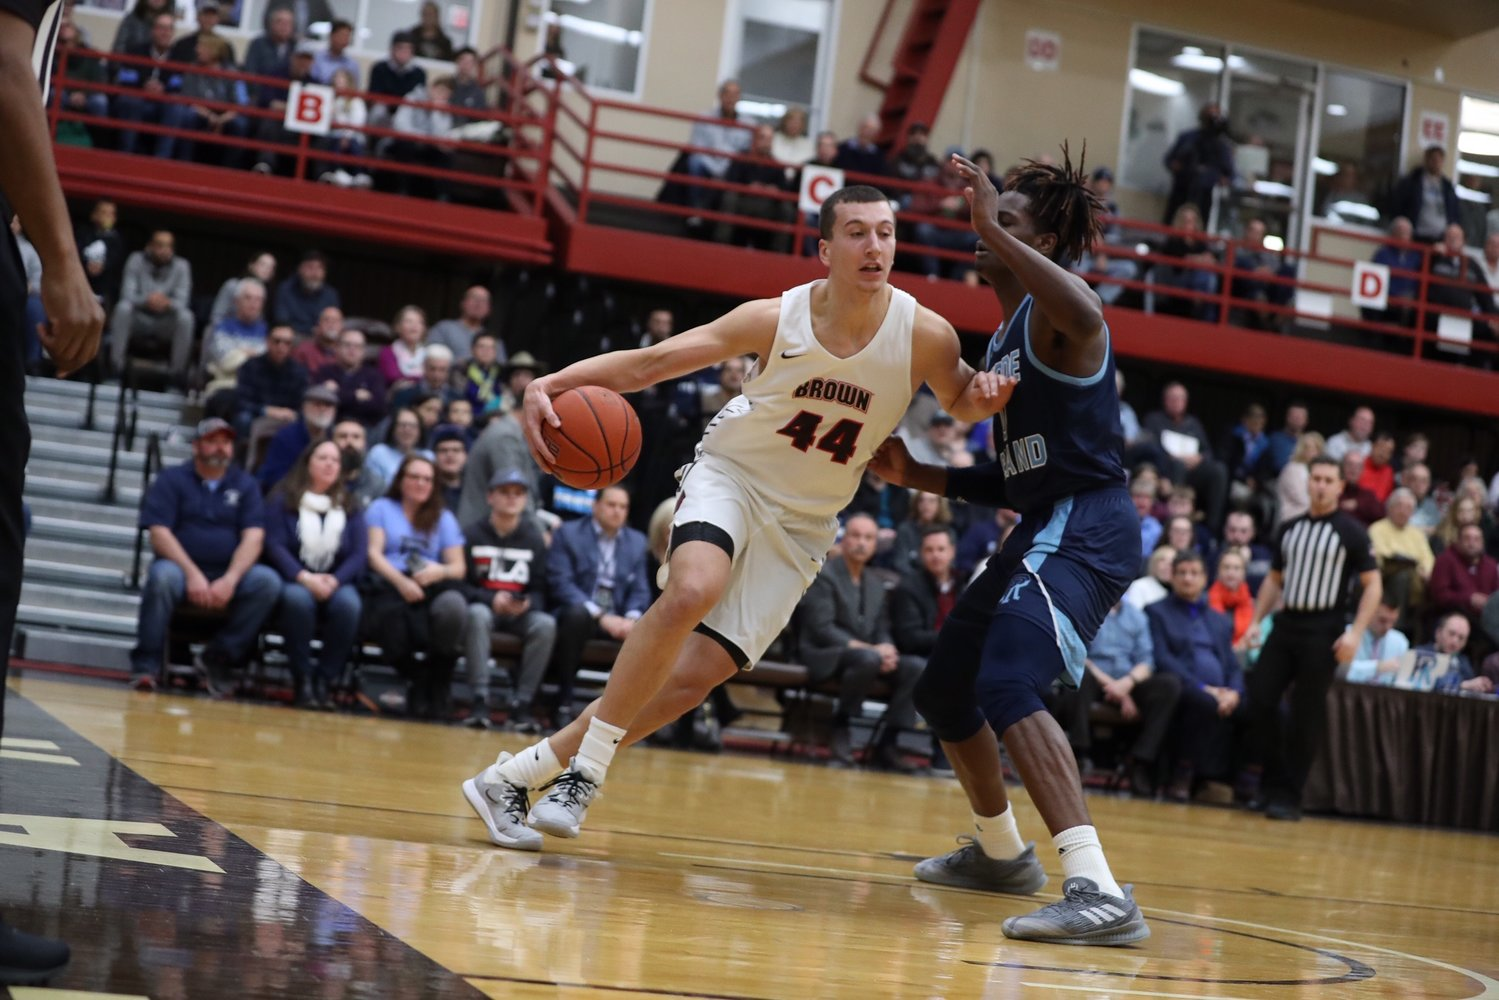 Brown University's Matt DeWolf drives to the basket during a game against URI. Matt starred at Barrington High School and later at Northfield Mount Hermon before heading to Brown University.